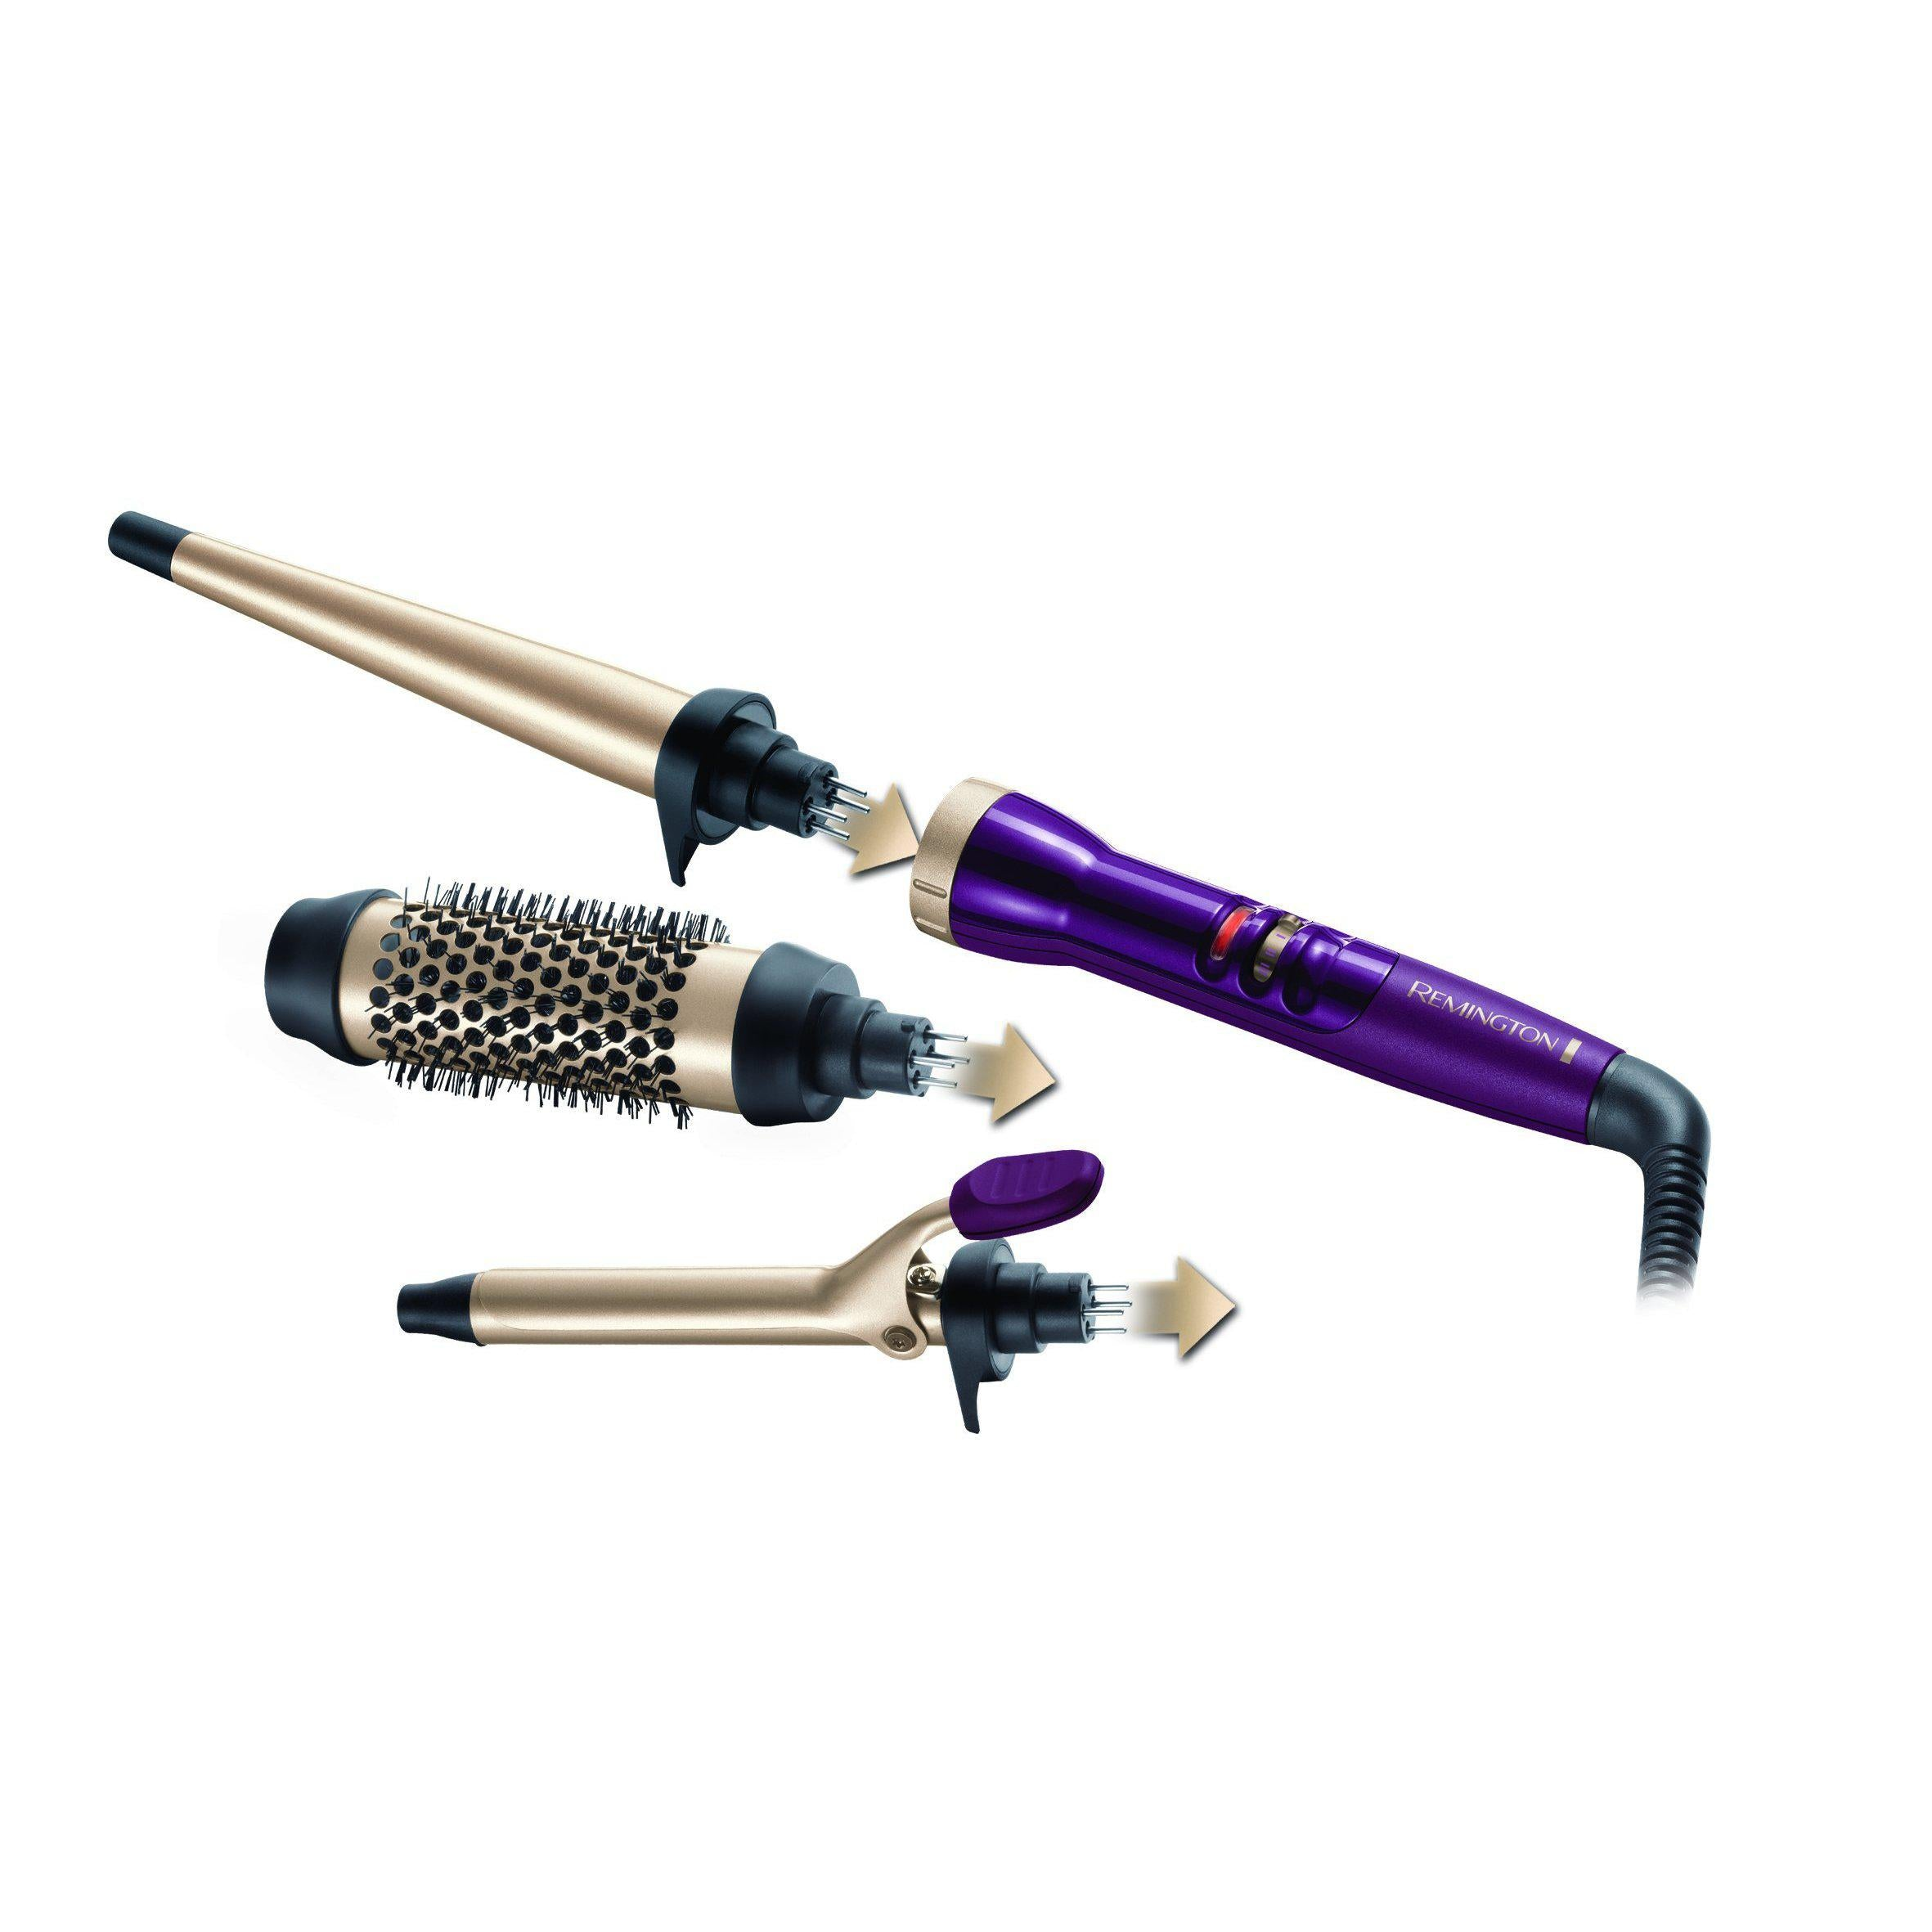 Remington CI97M1 Hair Styler Kit - Remington - Pazarska